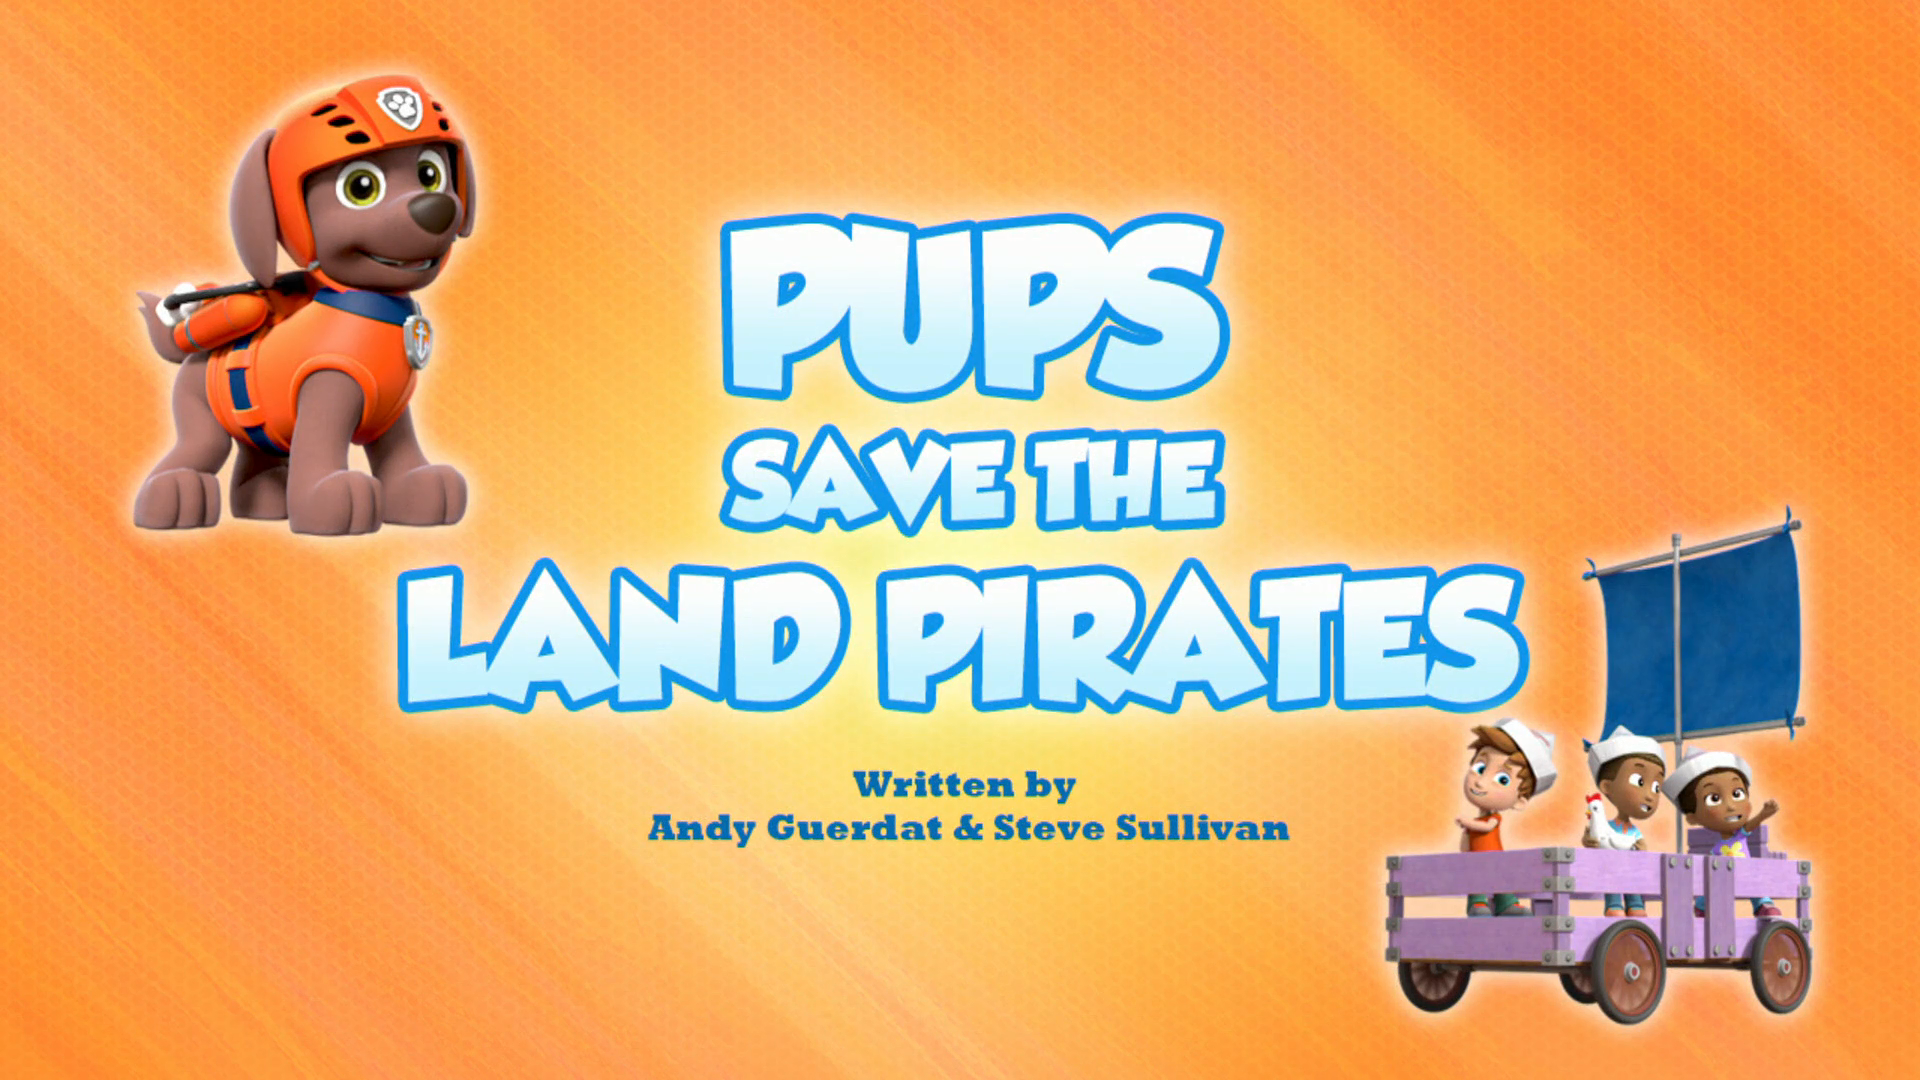 Pups Save the Land Pirates